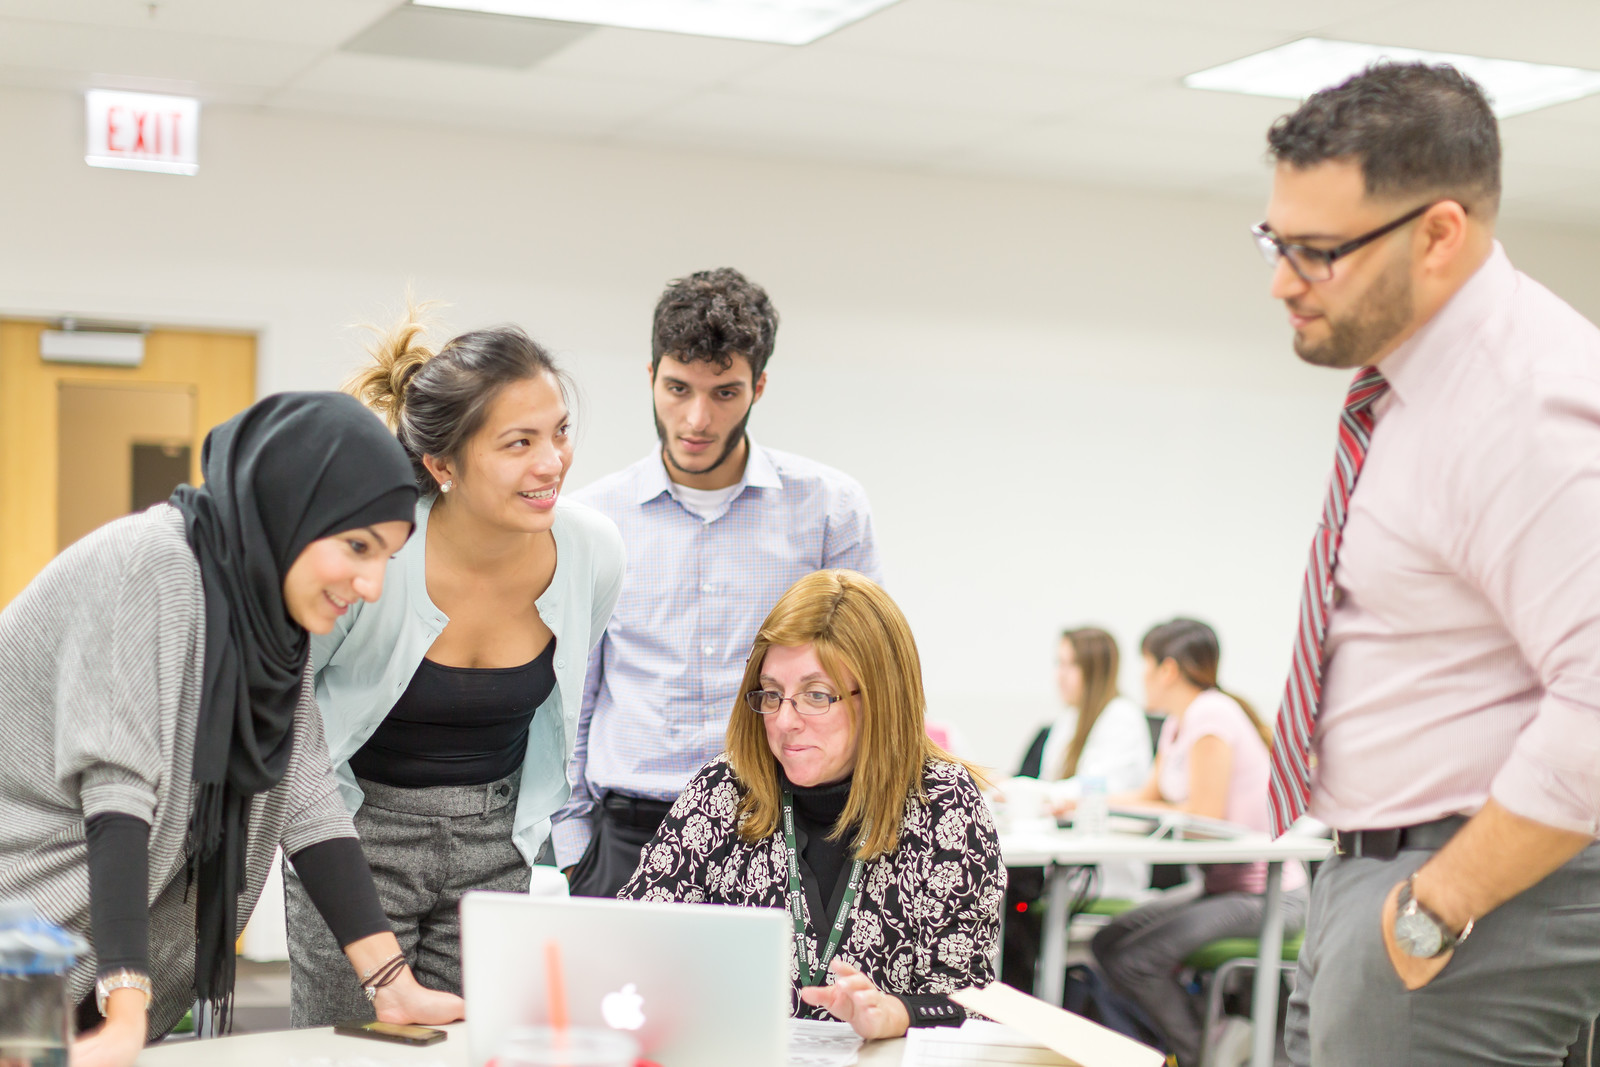 A Roosevelt professor working with a group of students